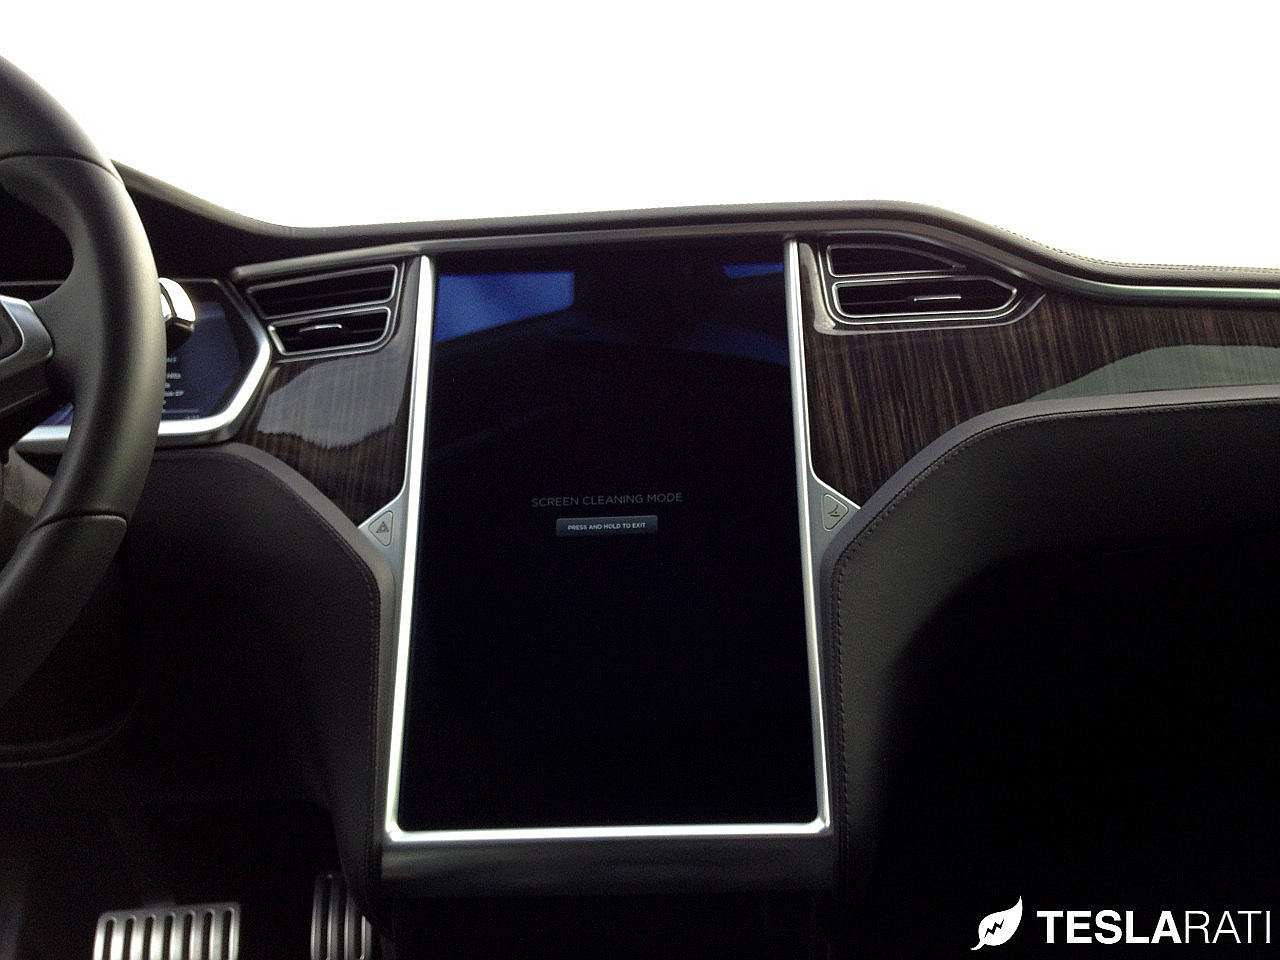 Griffin-Screen-Cleaning-Kit-Tesla-Model-S-Clean-Screen